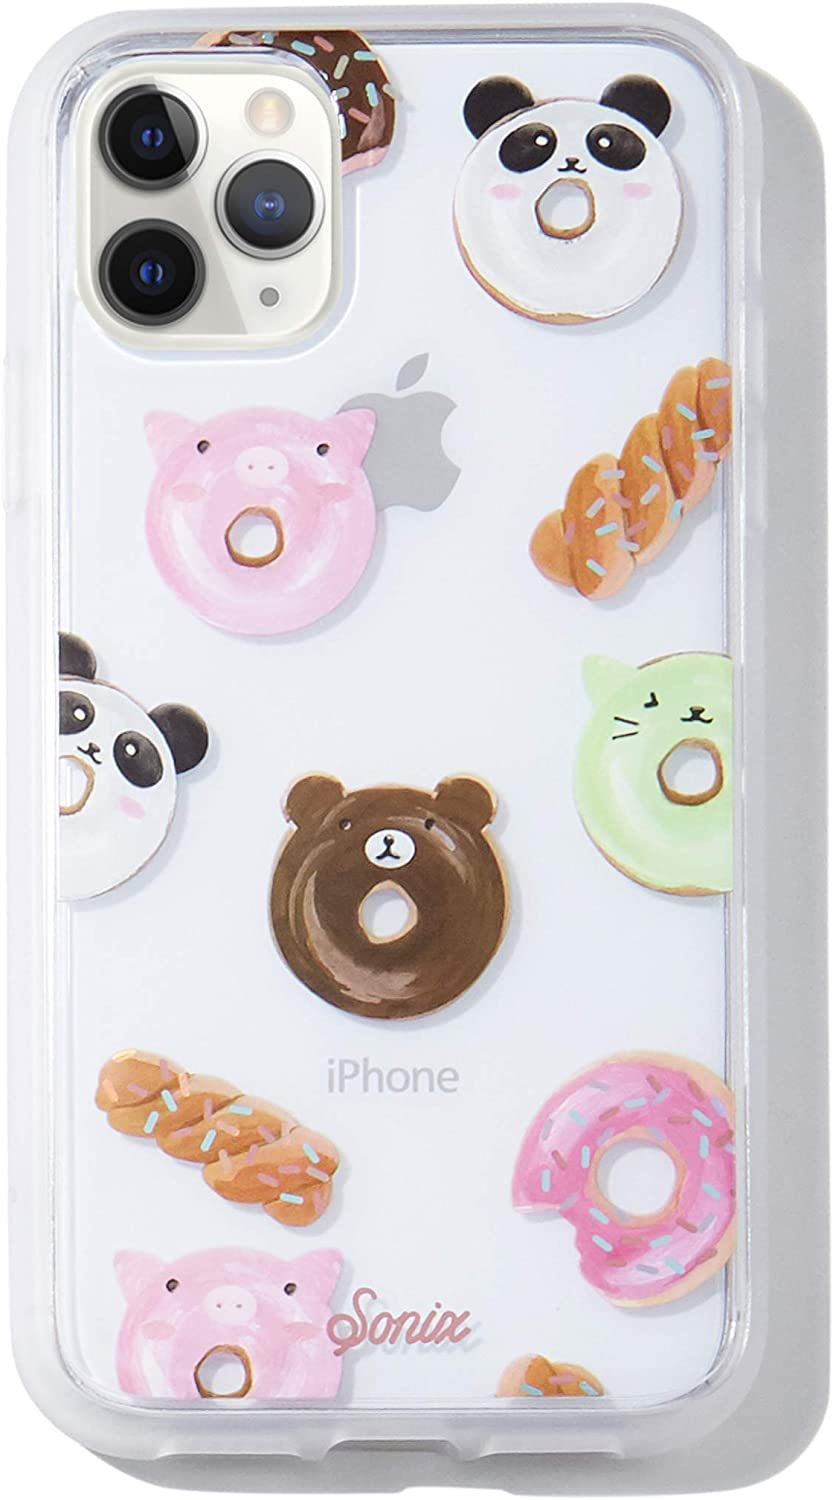 Sonix Kawaii Donuts Case for iPhone 11Pro [10ft Drop Tested] Protective Clear Series for Apple iPhone 11 Pro